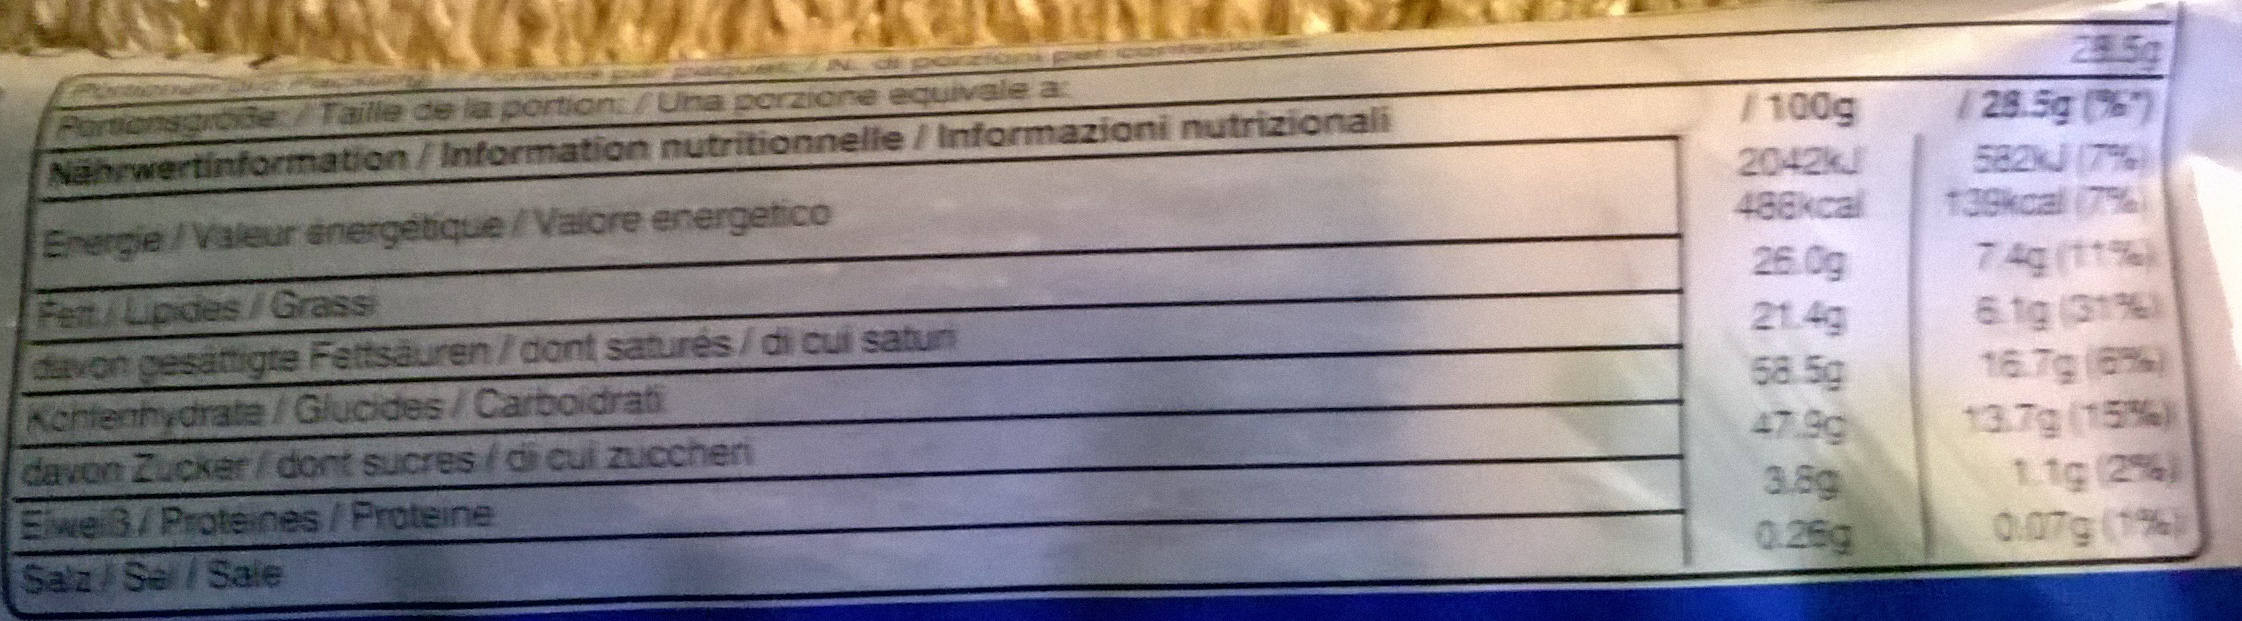 Bounty - Informations nutritionnelles - fr